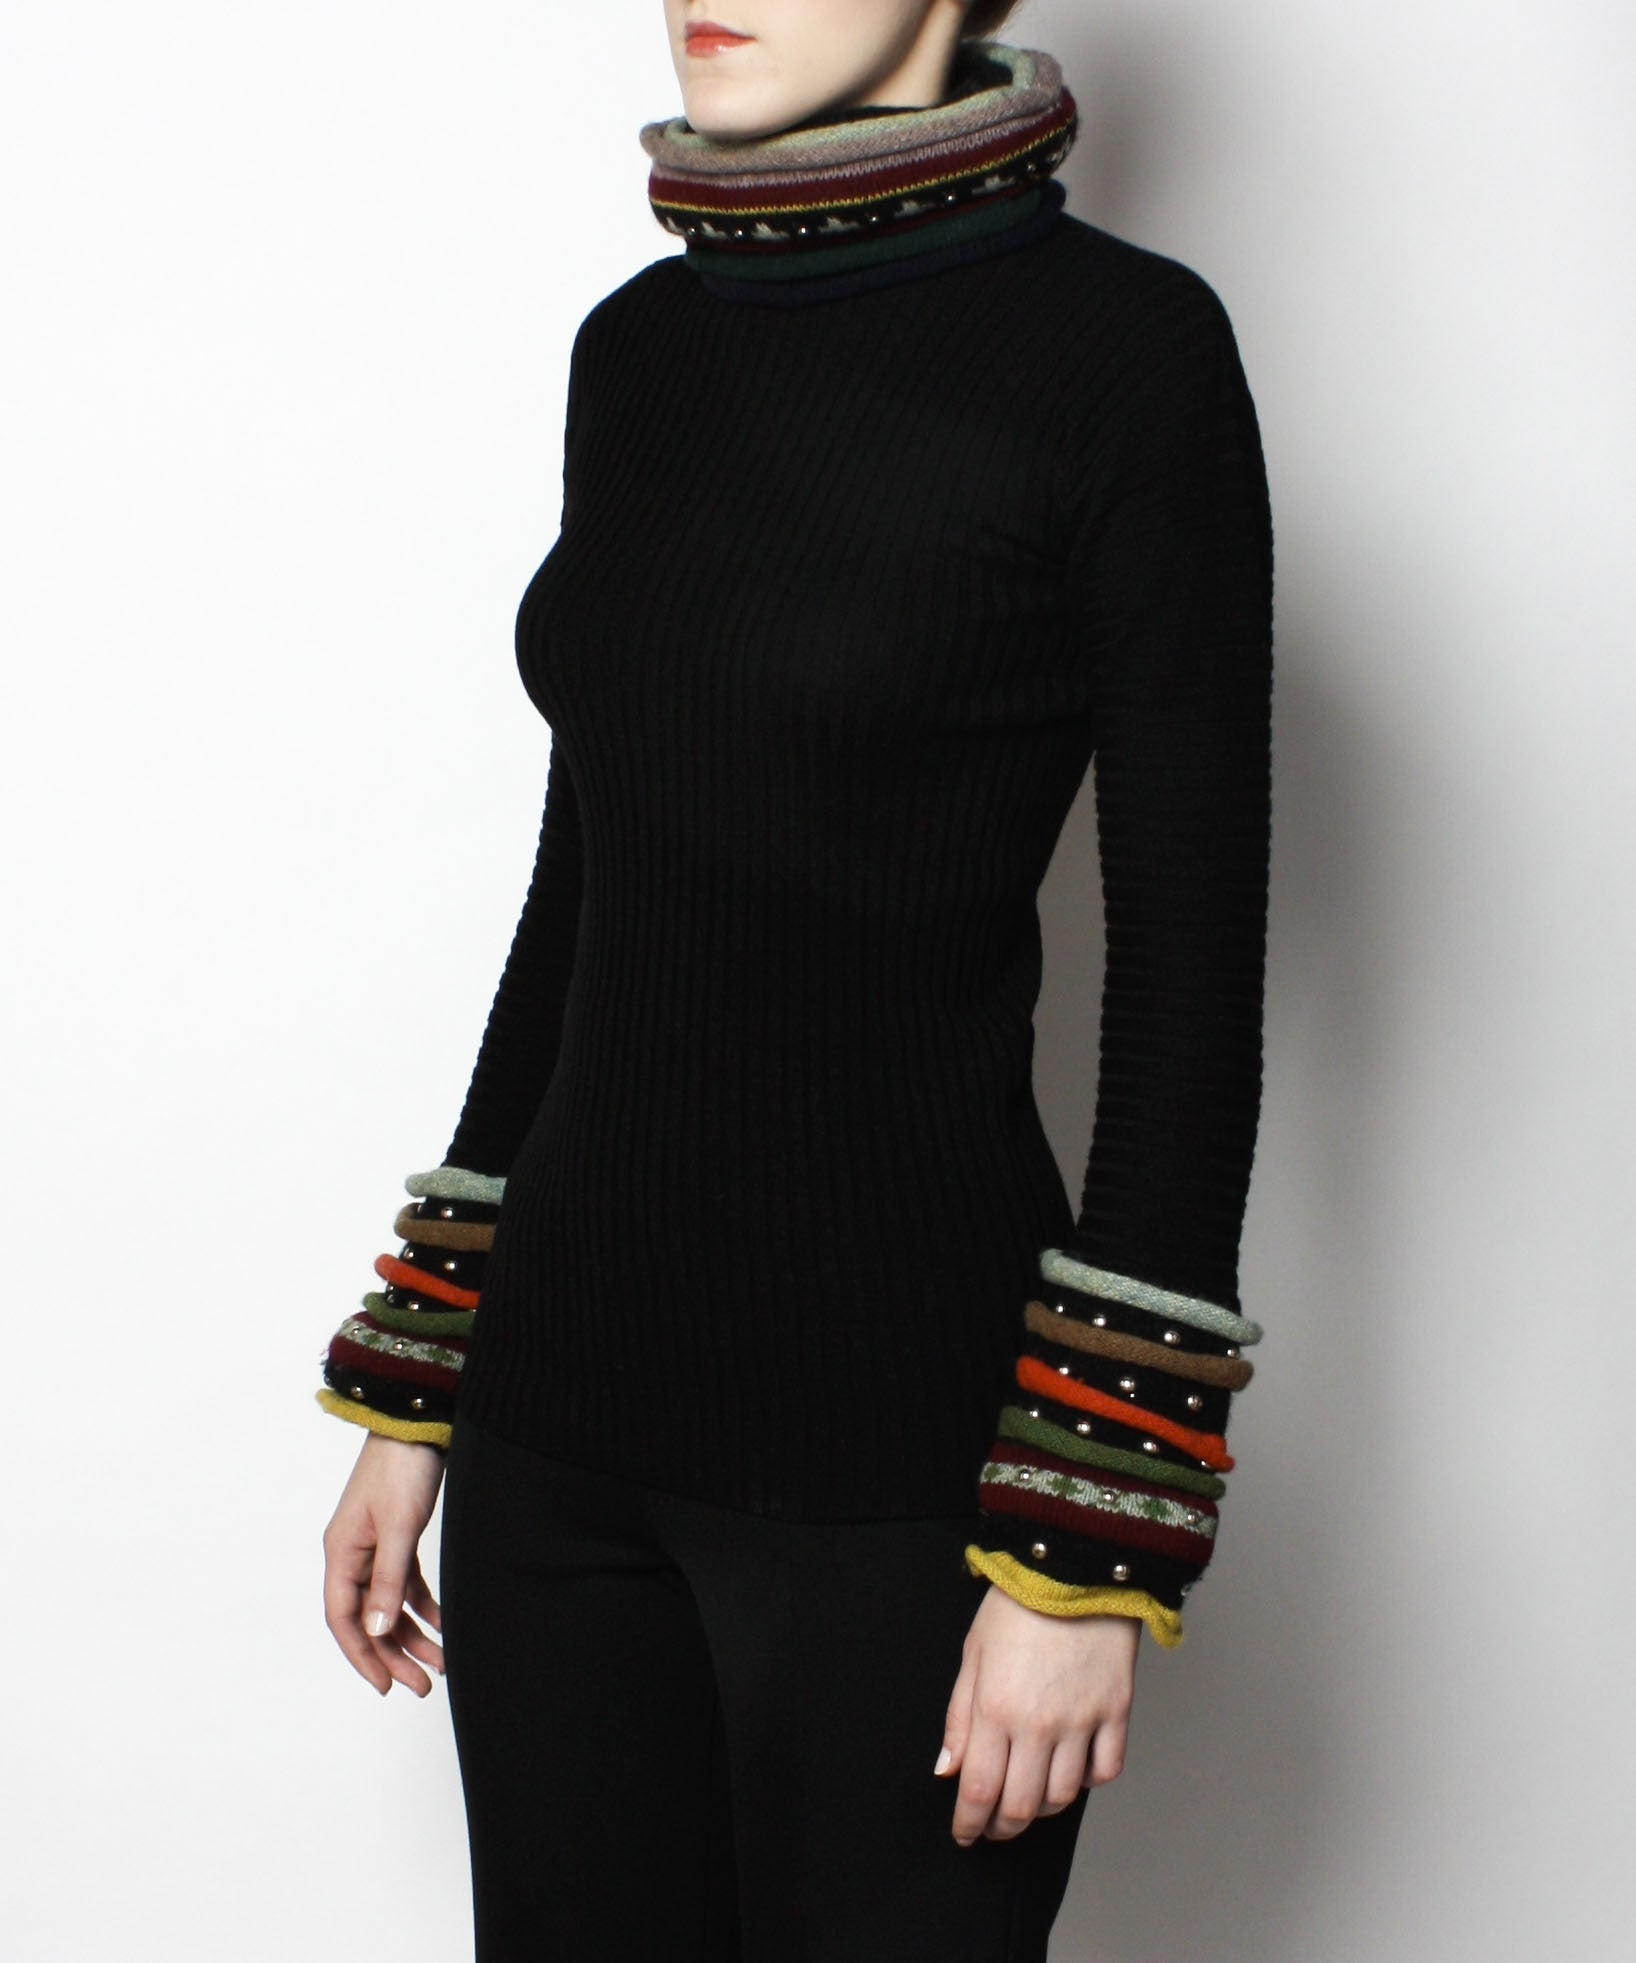 Jean Paul Gaultier Black Sweater with Over Sized Turtleneck